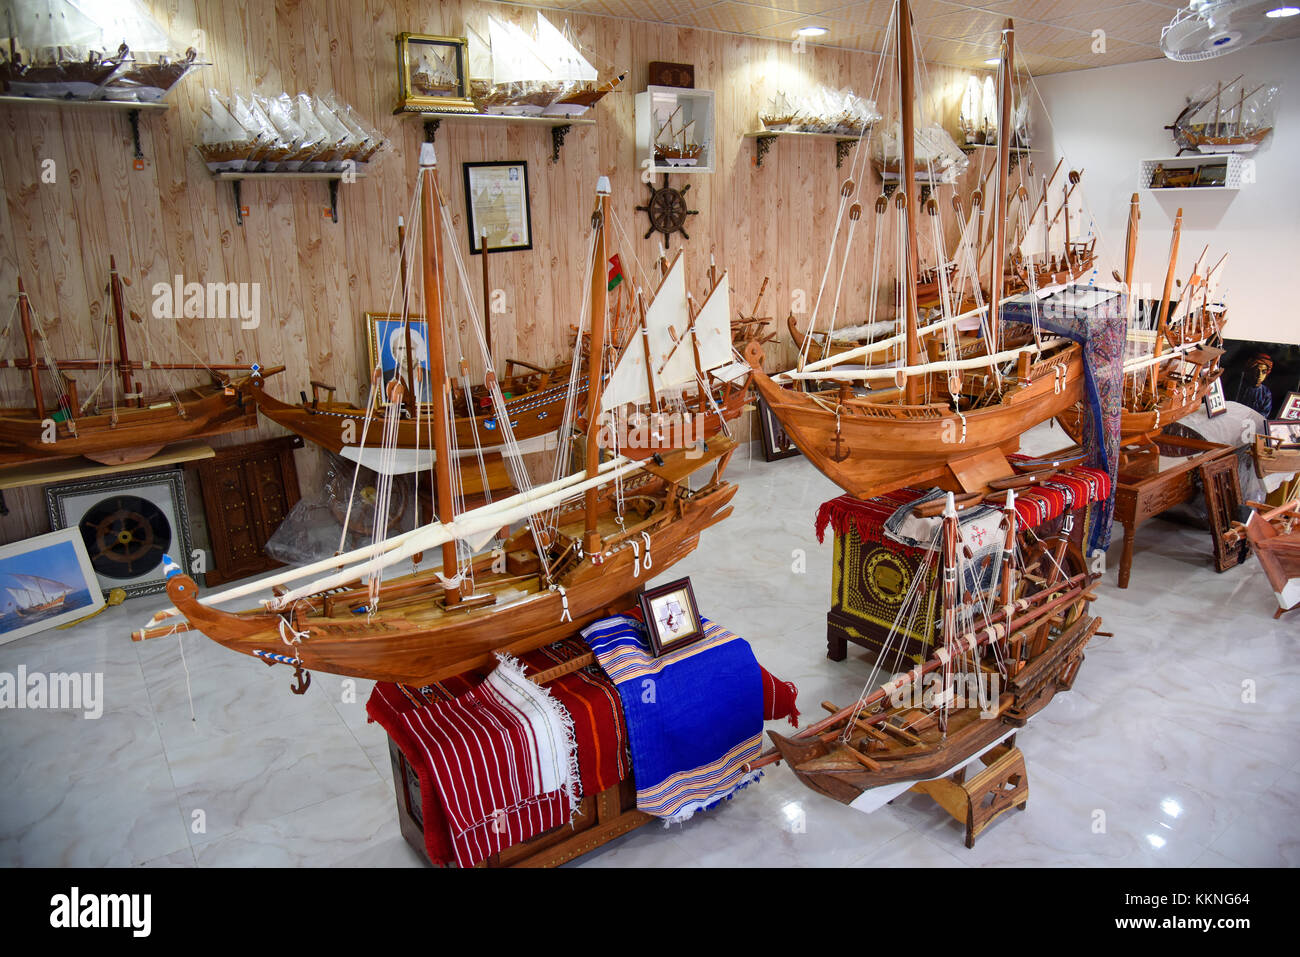 Oman Sur A crafts store with tiny models of dhows or traditional sailing vessels - Stock Image